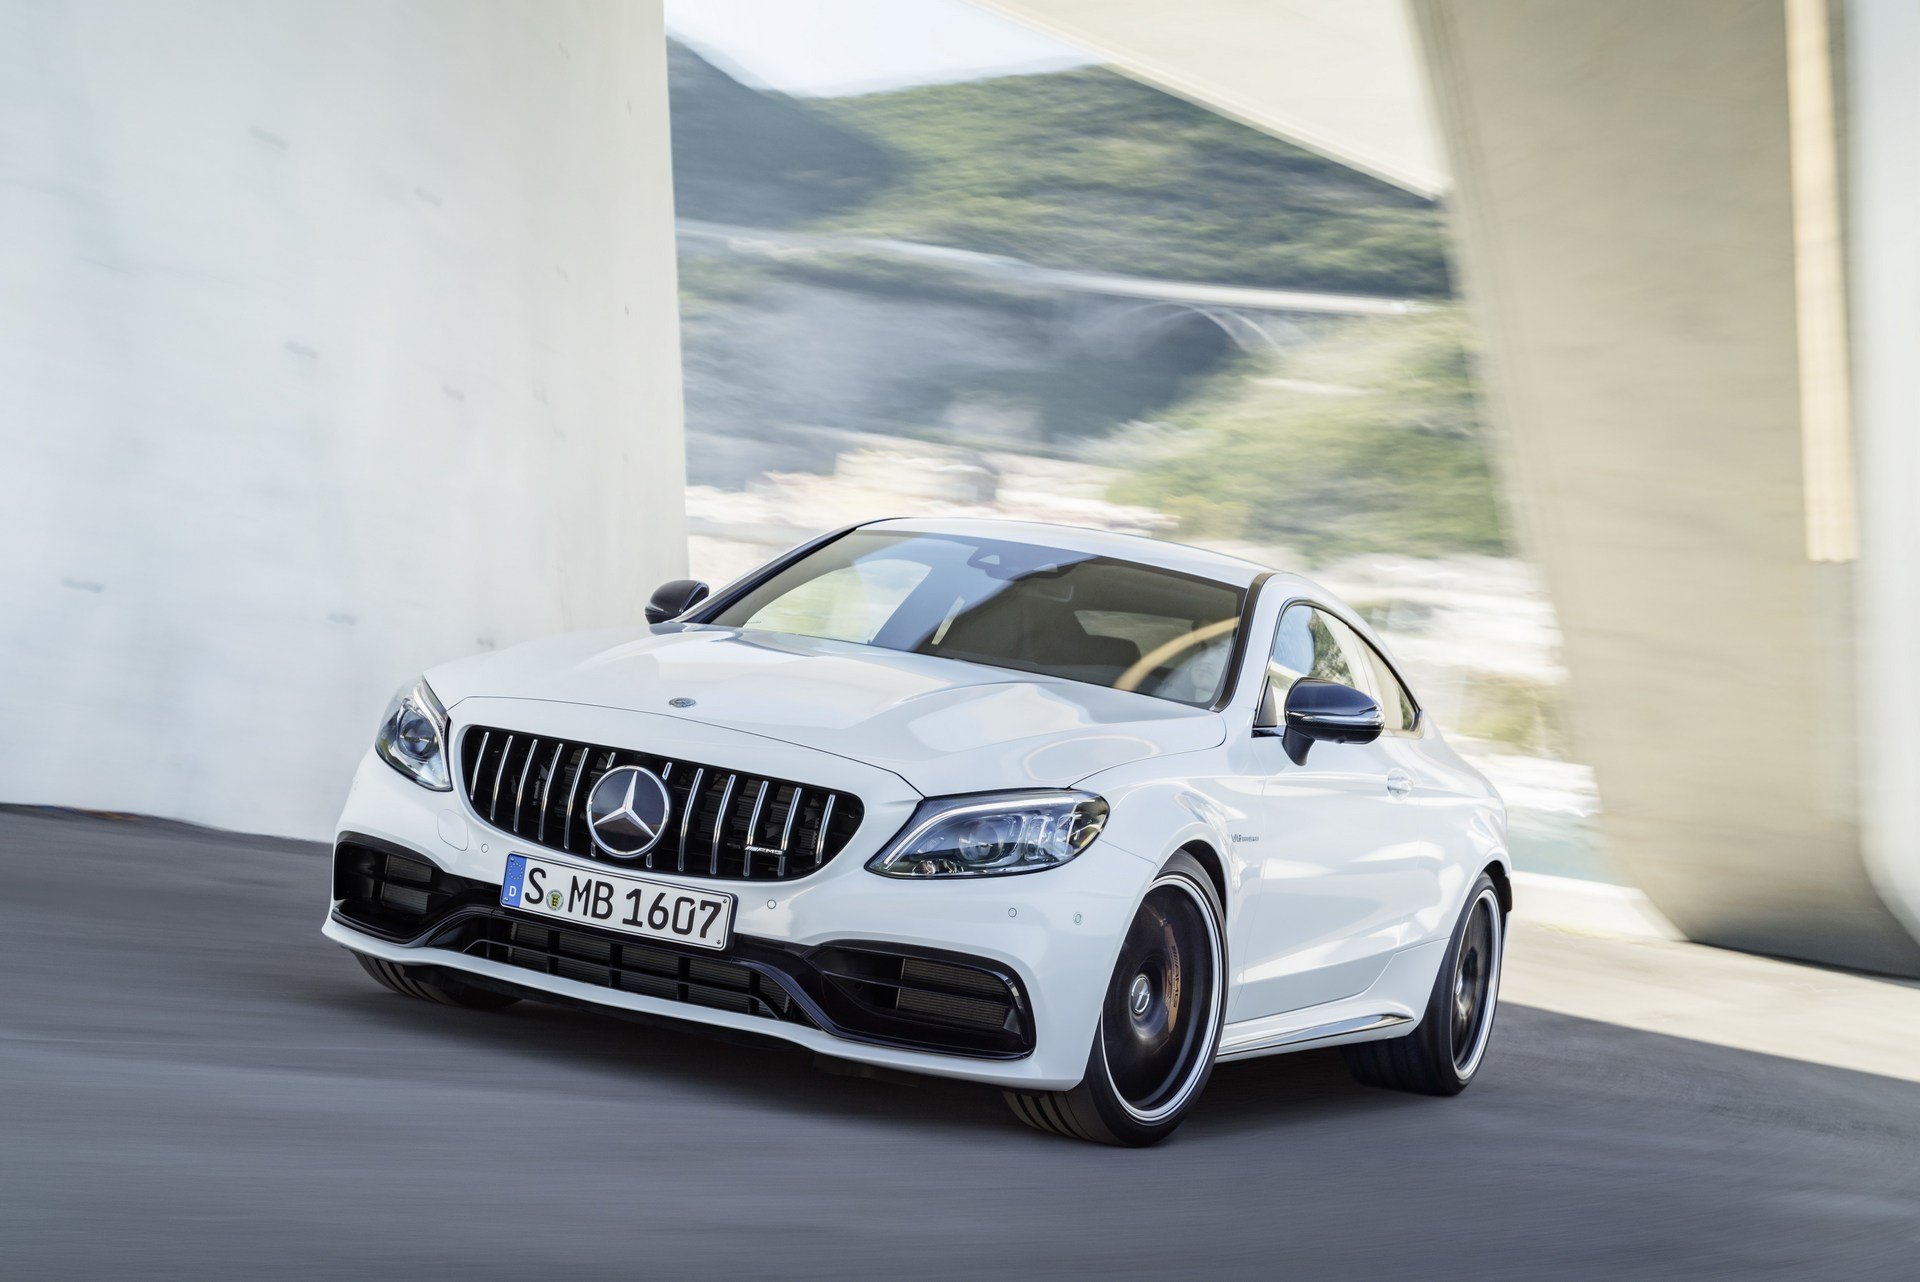 Mercedes-AMG C63S Coupe 2019 [facelifting]facelifting]